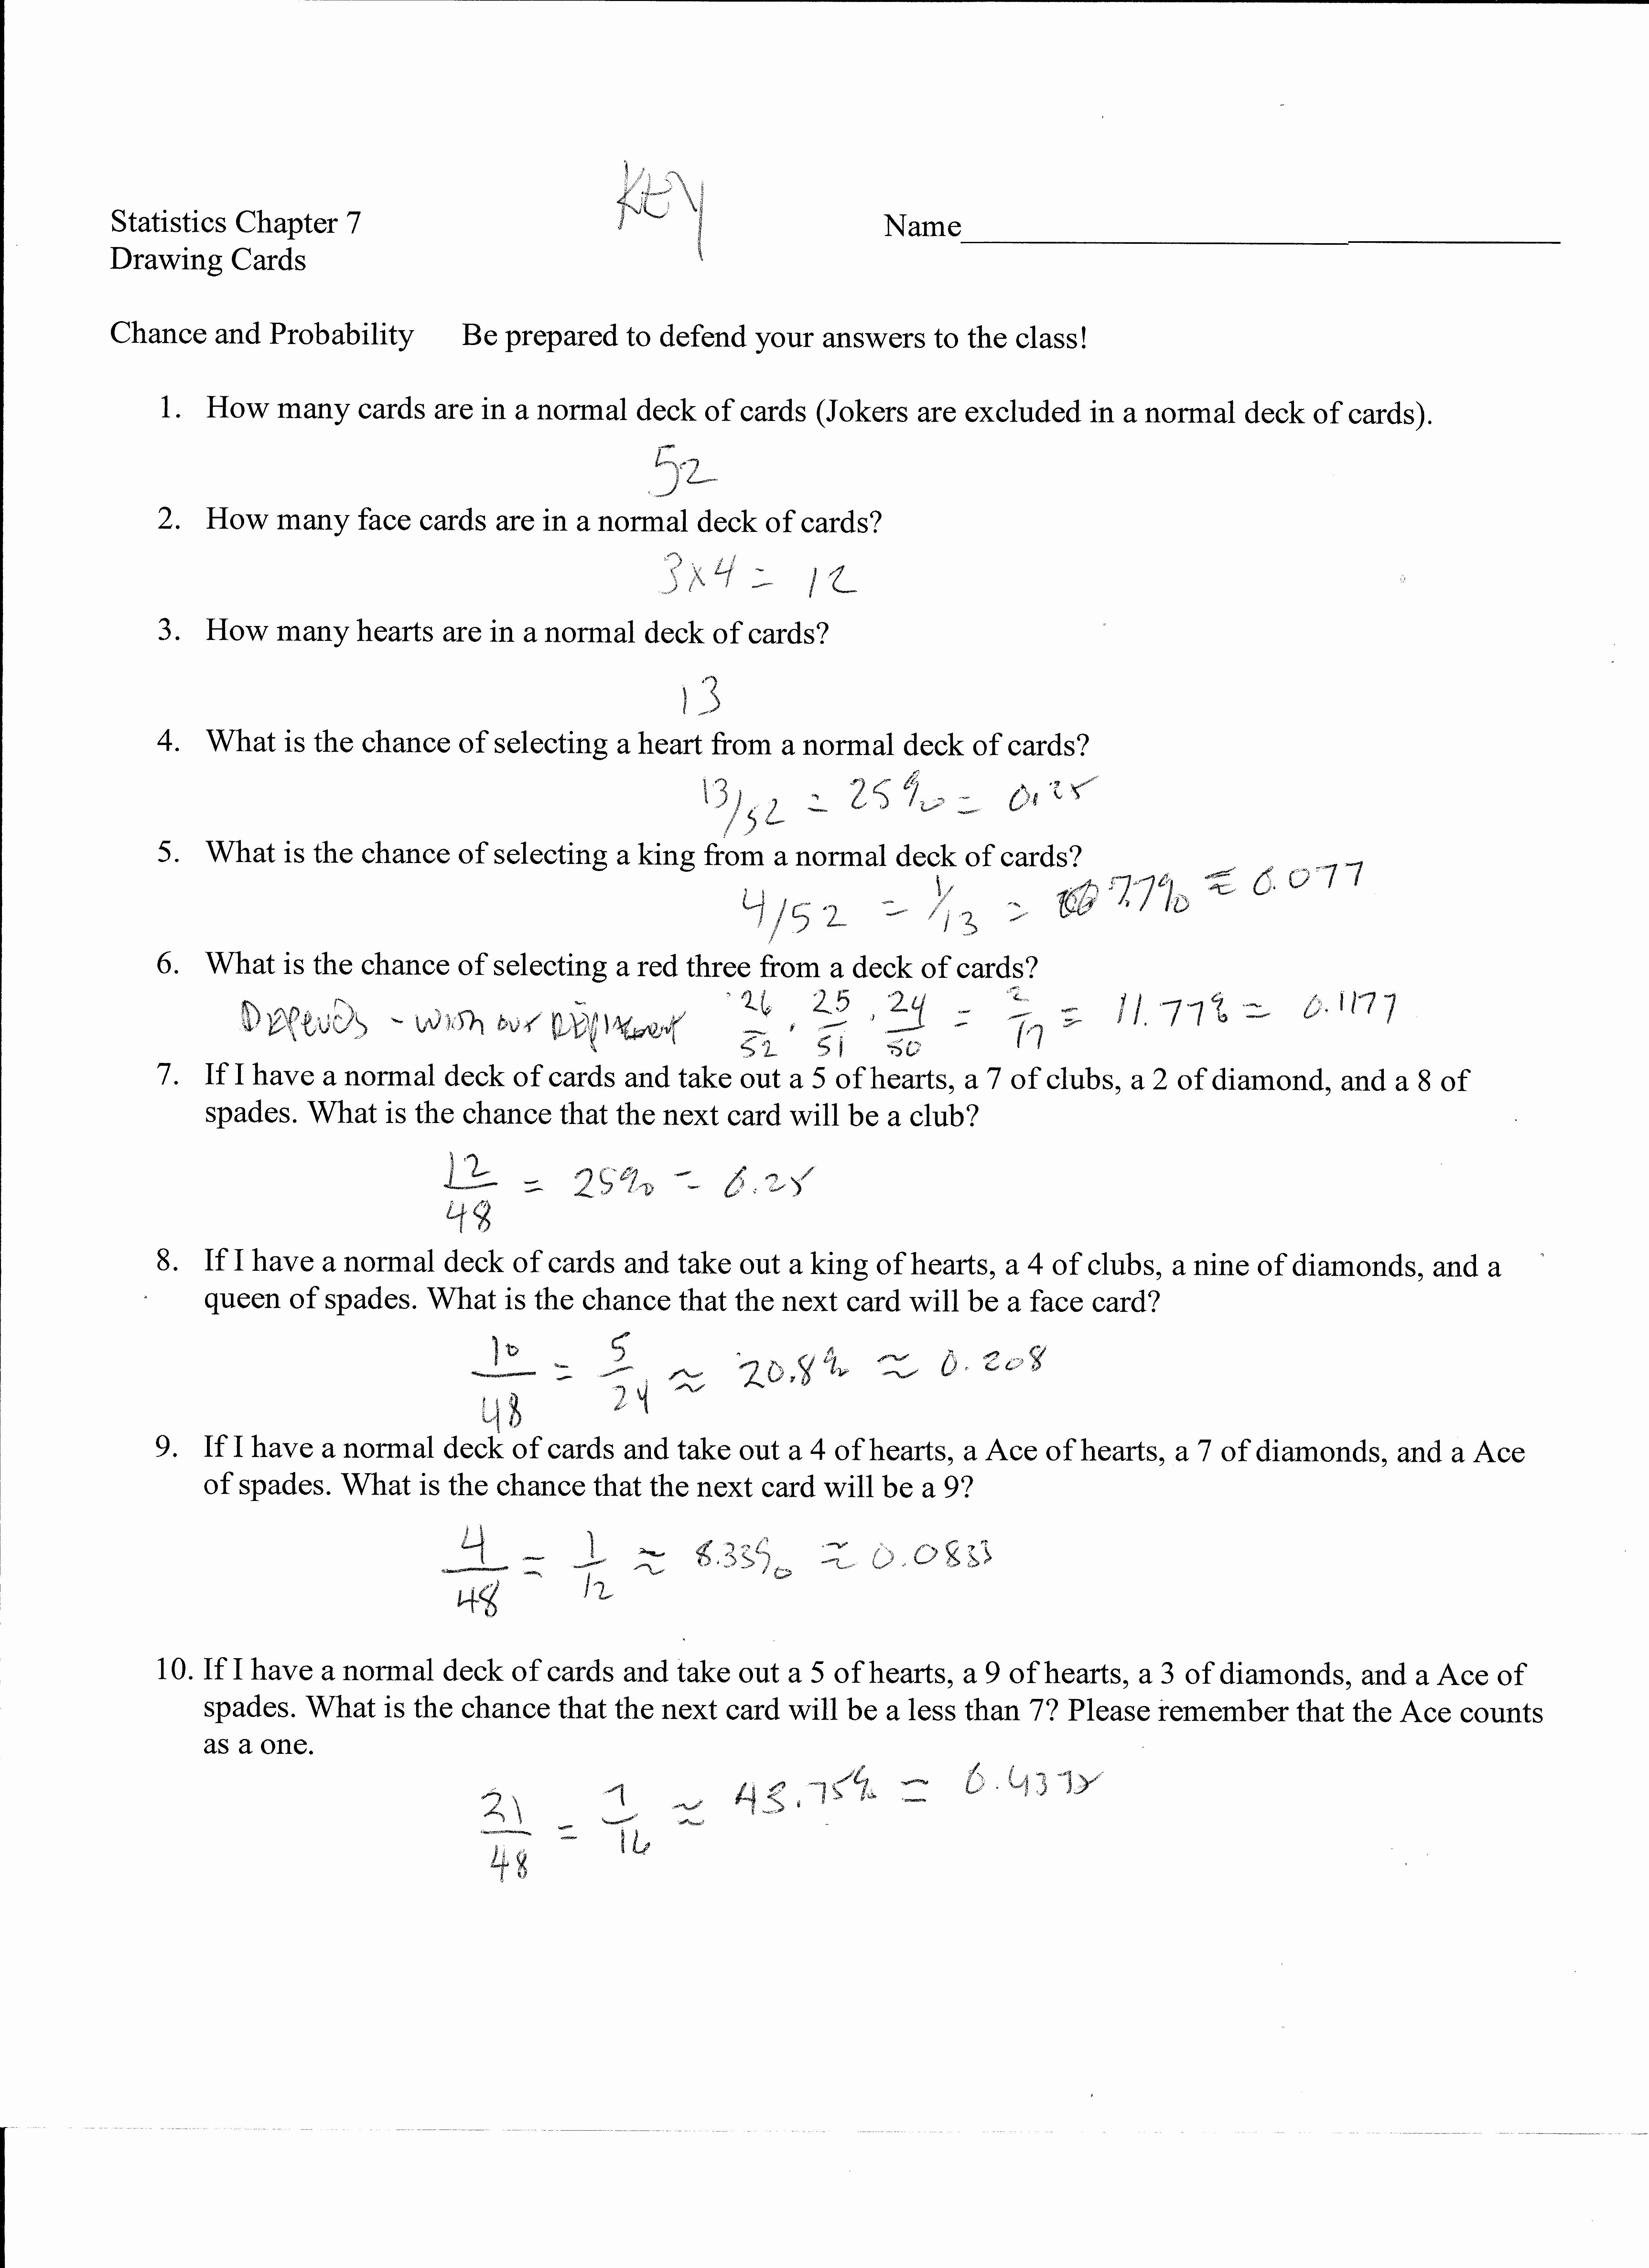 Pythagorean theorem Word Problems Worksheet New 5 1 Worksheet Transformations Cubic Functions Answers